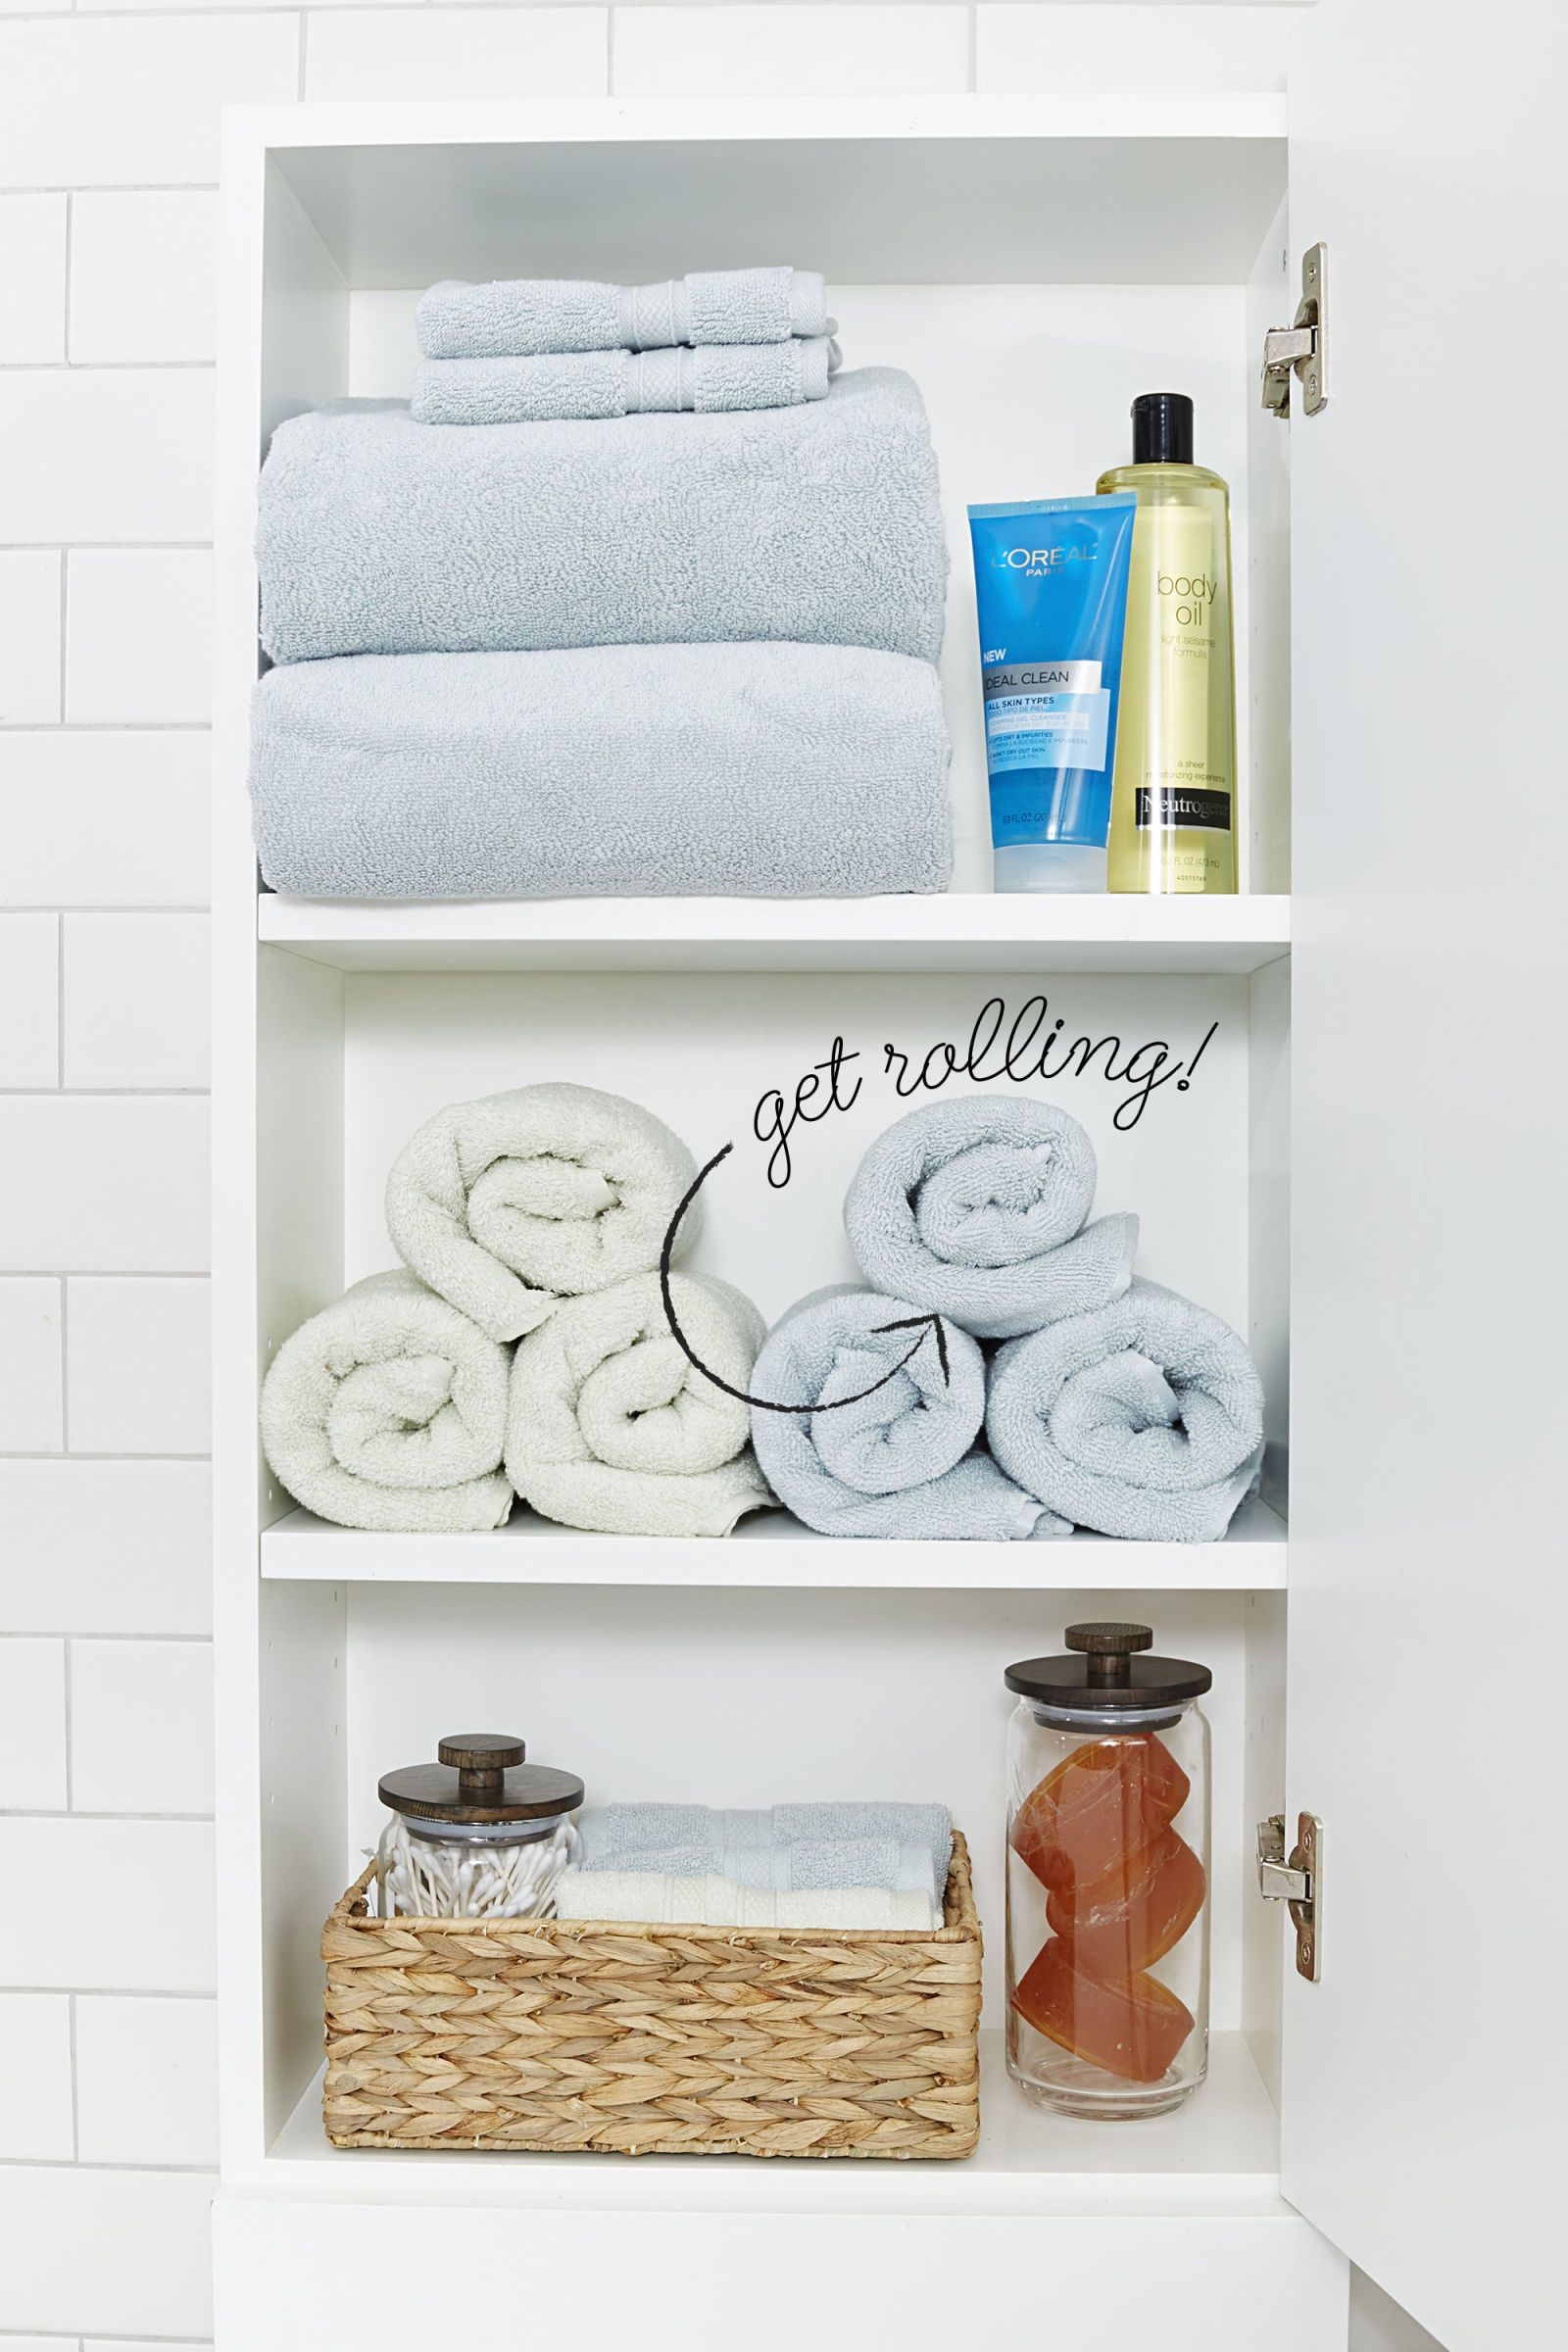 10 Stylish Tricks for a More-Organized Bathroom | Towels, Linens and ...